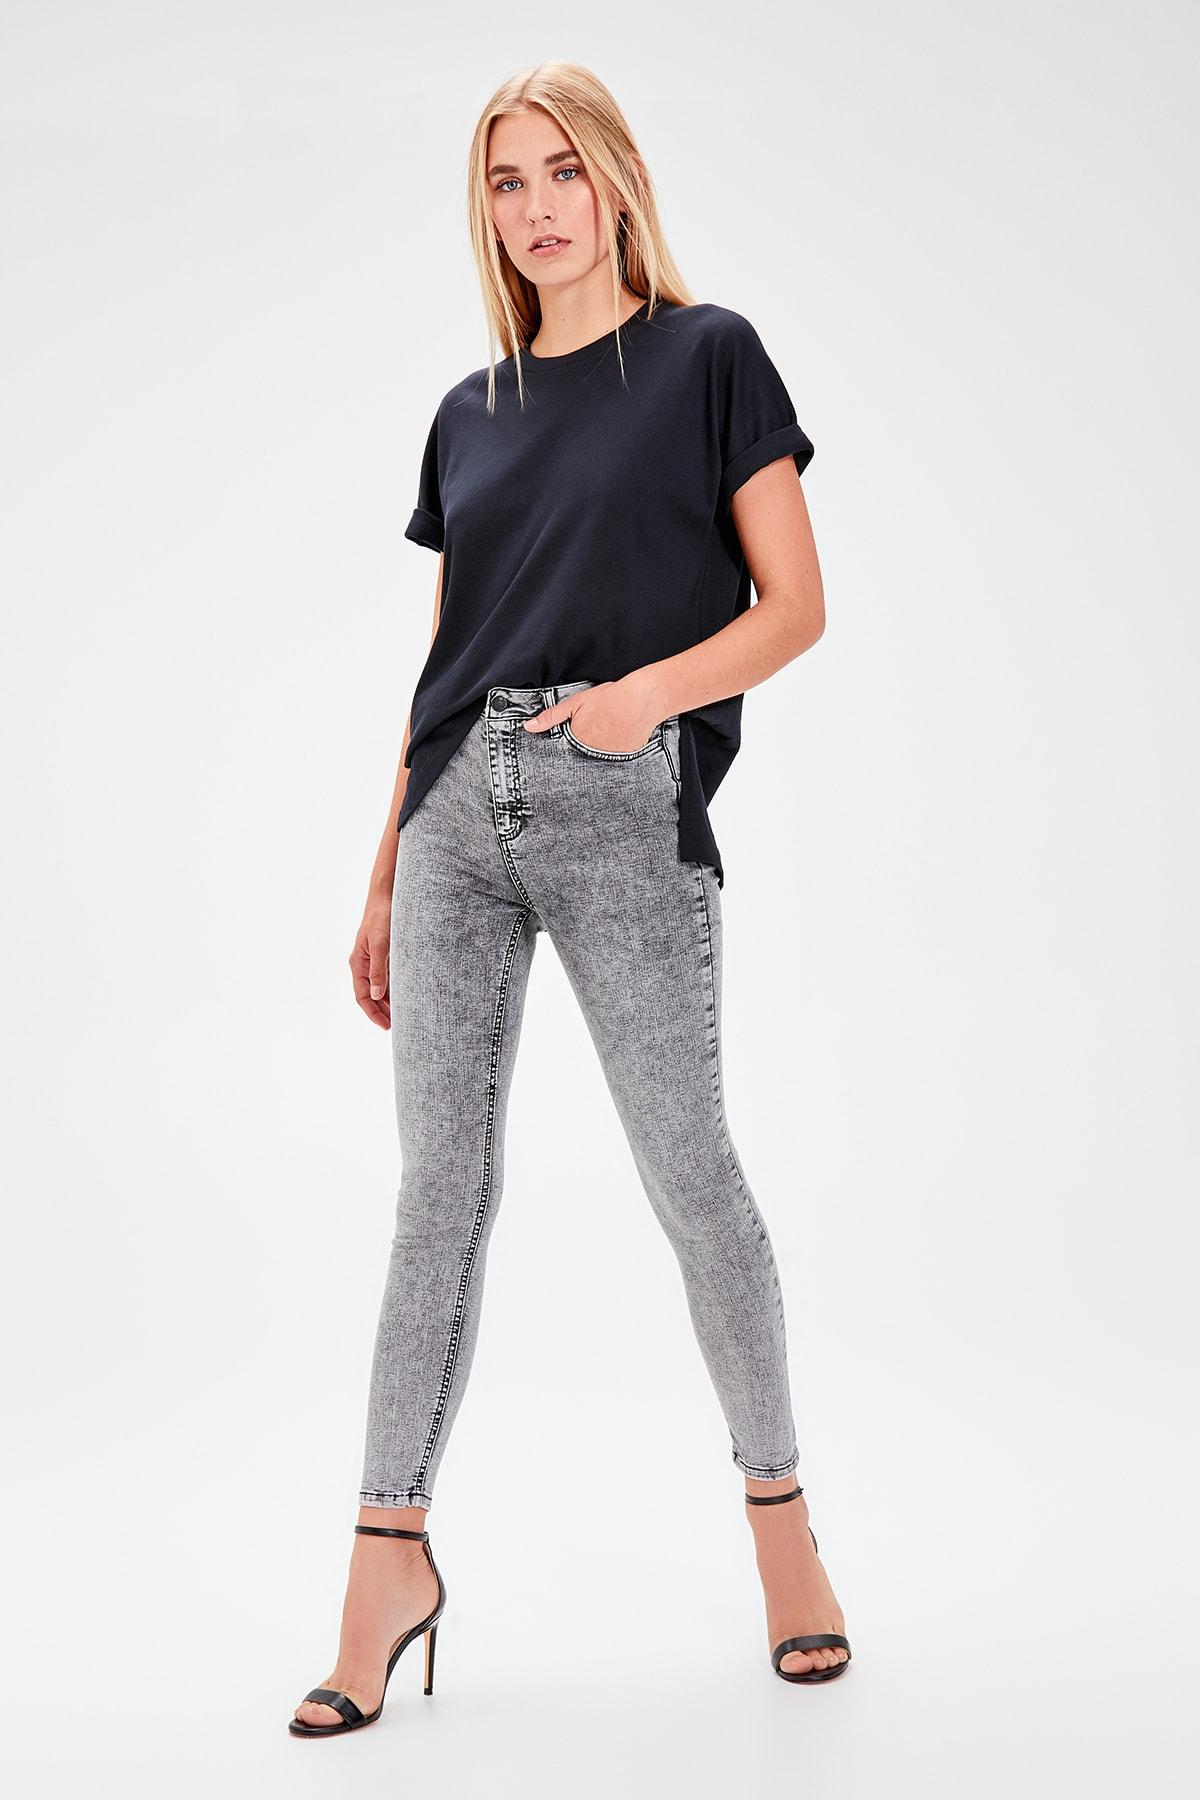 Trendyol Anthracite-Flushing High Waist Skinny Jeans TWOAW20JE0065